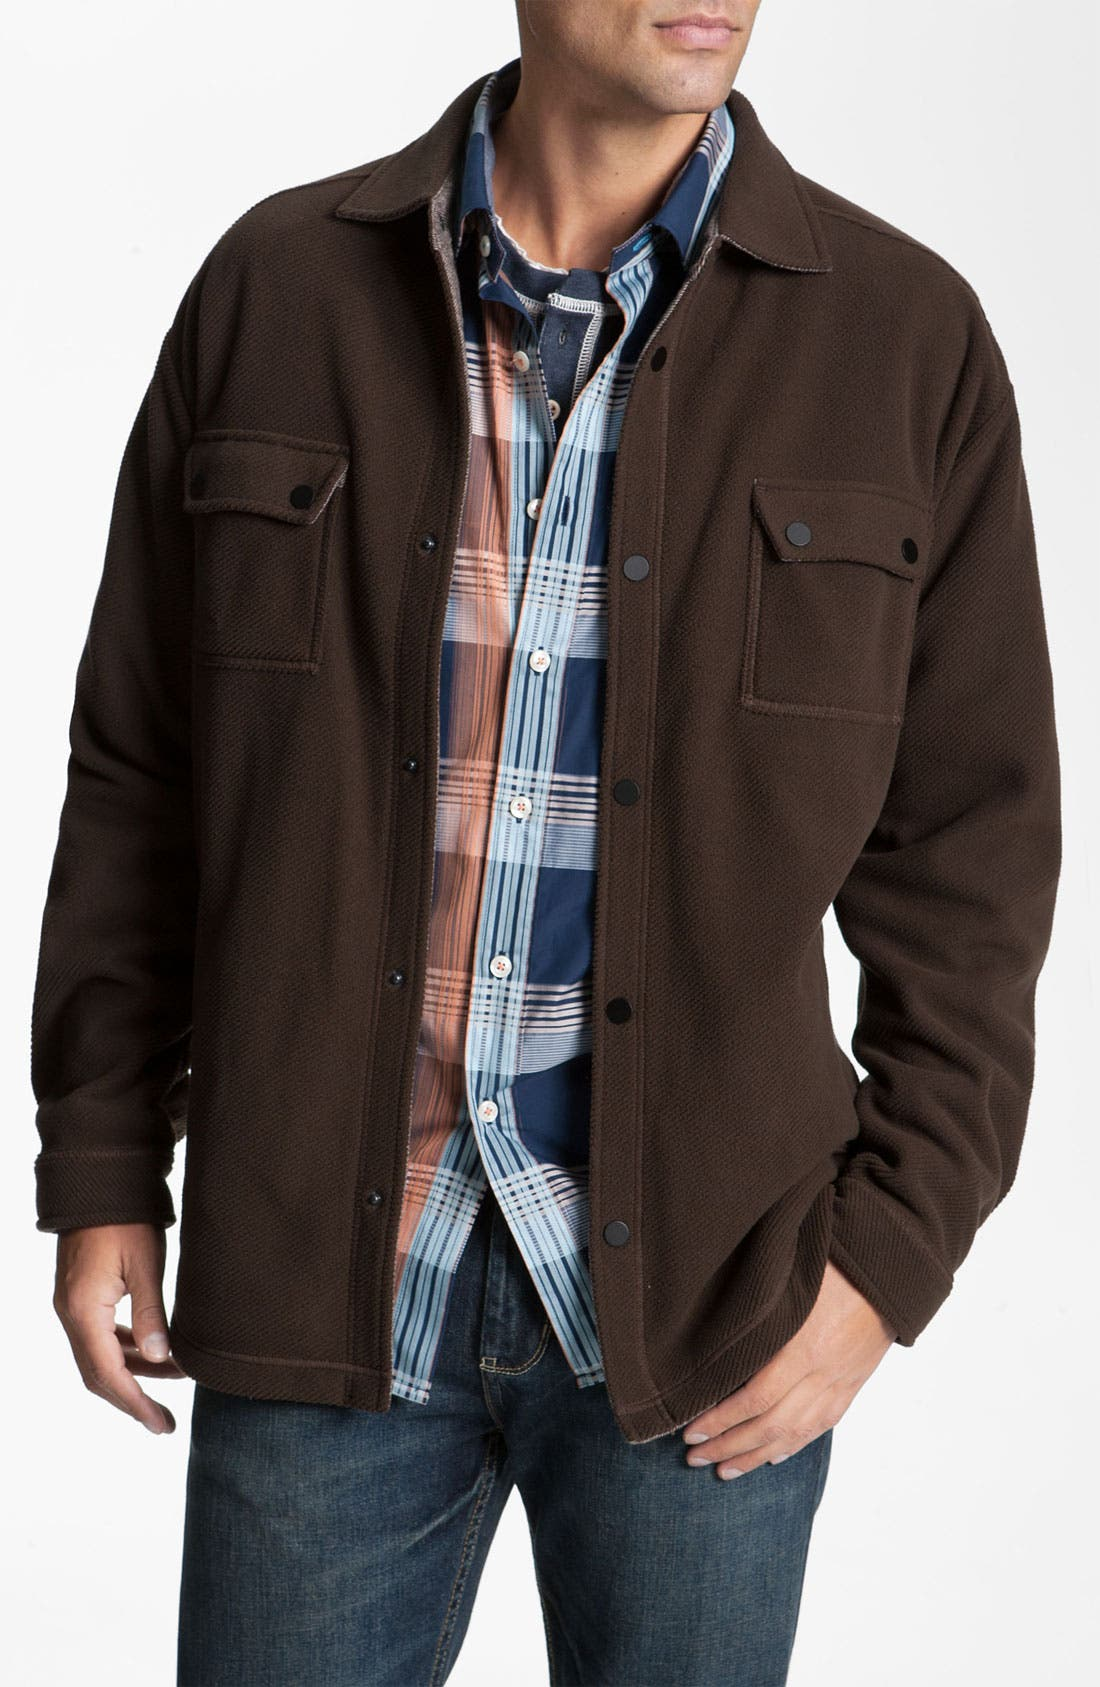 Alternate Image 1 Selected - Tommy Bahama 'Built to Twill' Shirt